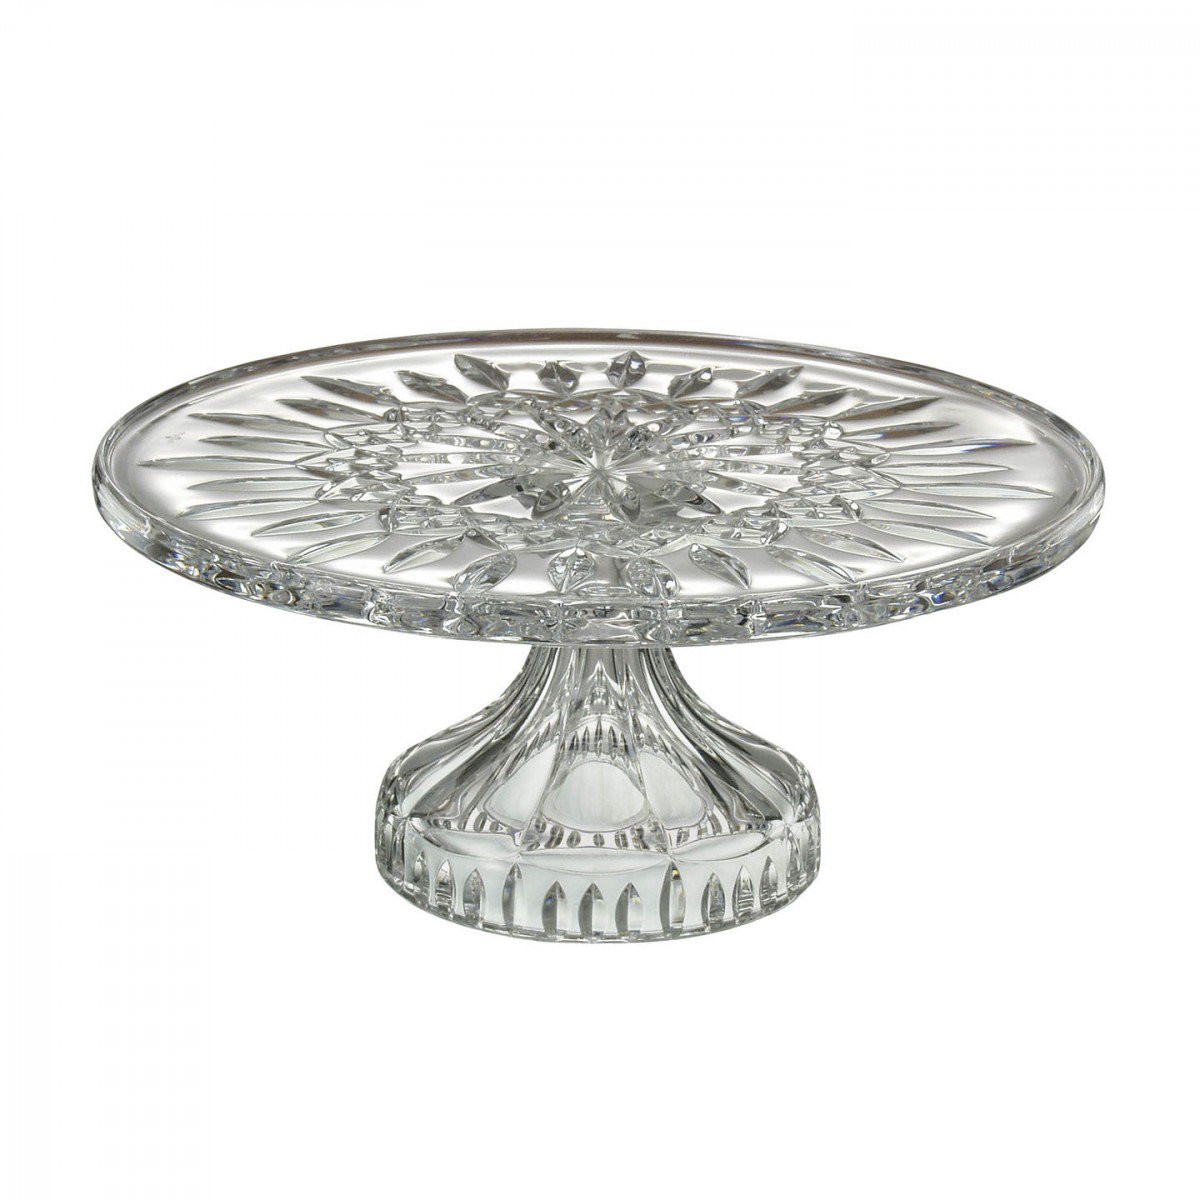 waterford lismore candy bud vase of waterford lismore footed cake plate 11cm waterforda crystal in lismore footed cake plate 11cm